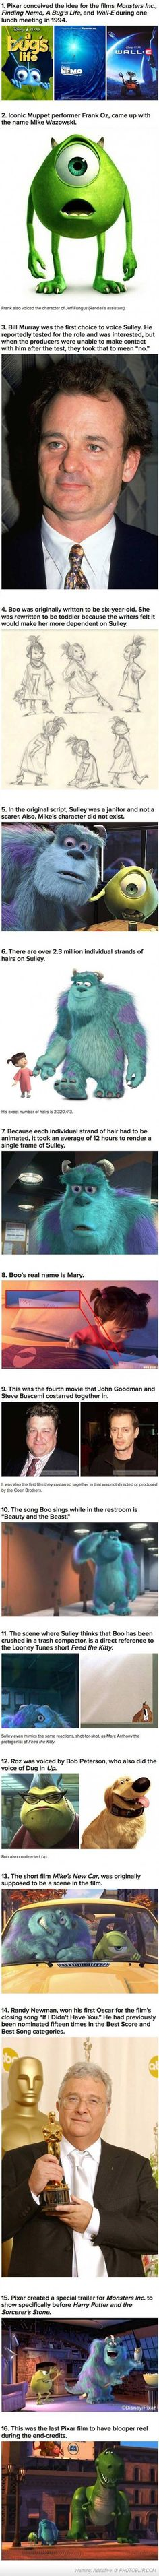 16 curiosidades de Monsters Inc